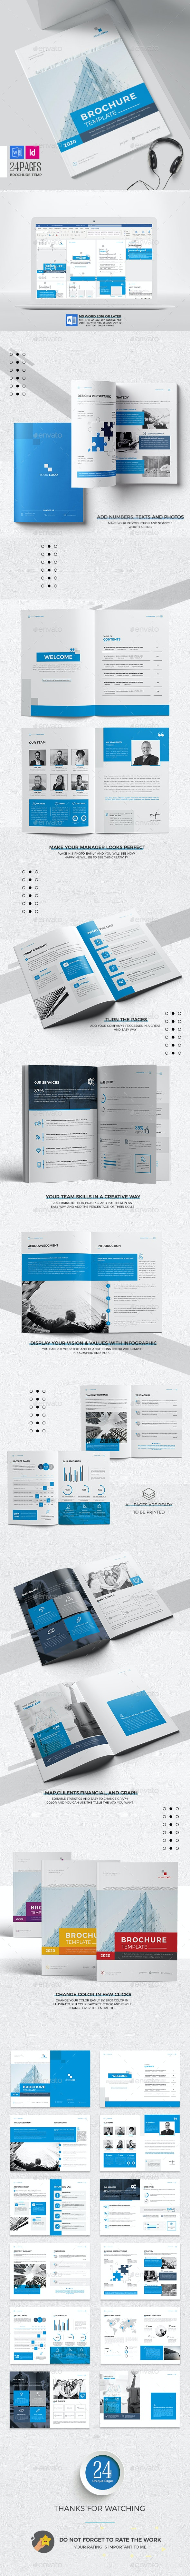 Company Brochure Word Template, 24 Pages - Corporate Brochures